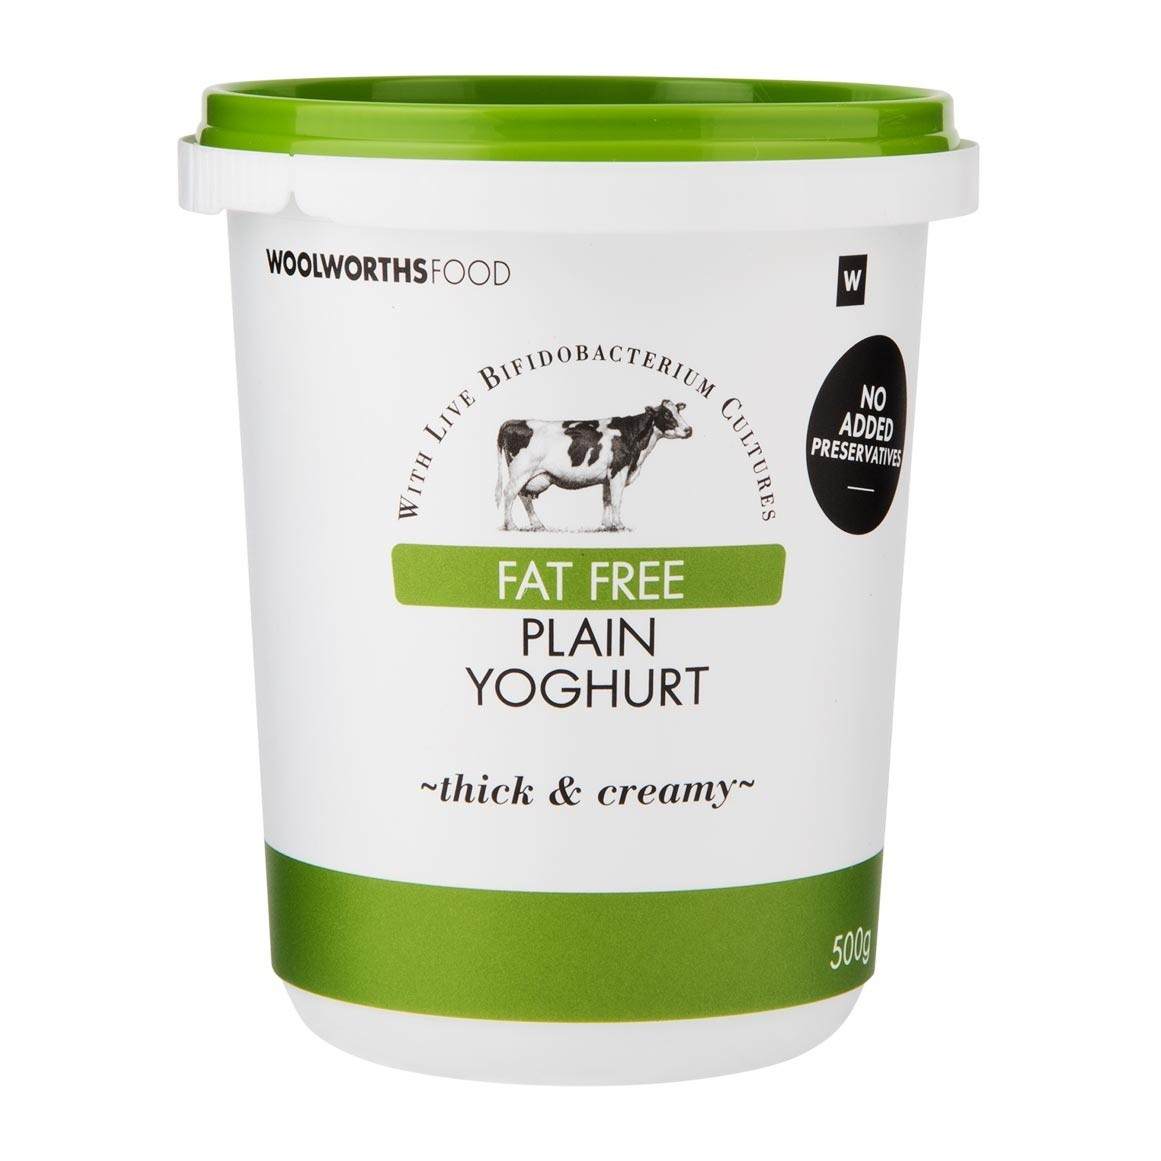 Fat-Free-Plain-Yoghurt-500g-20040444